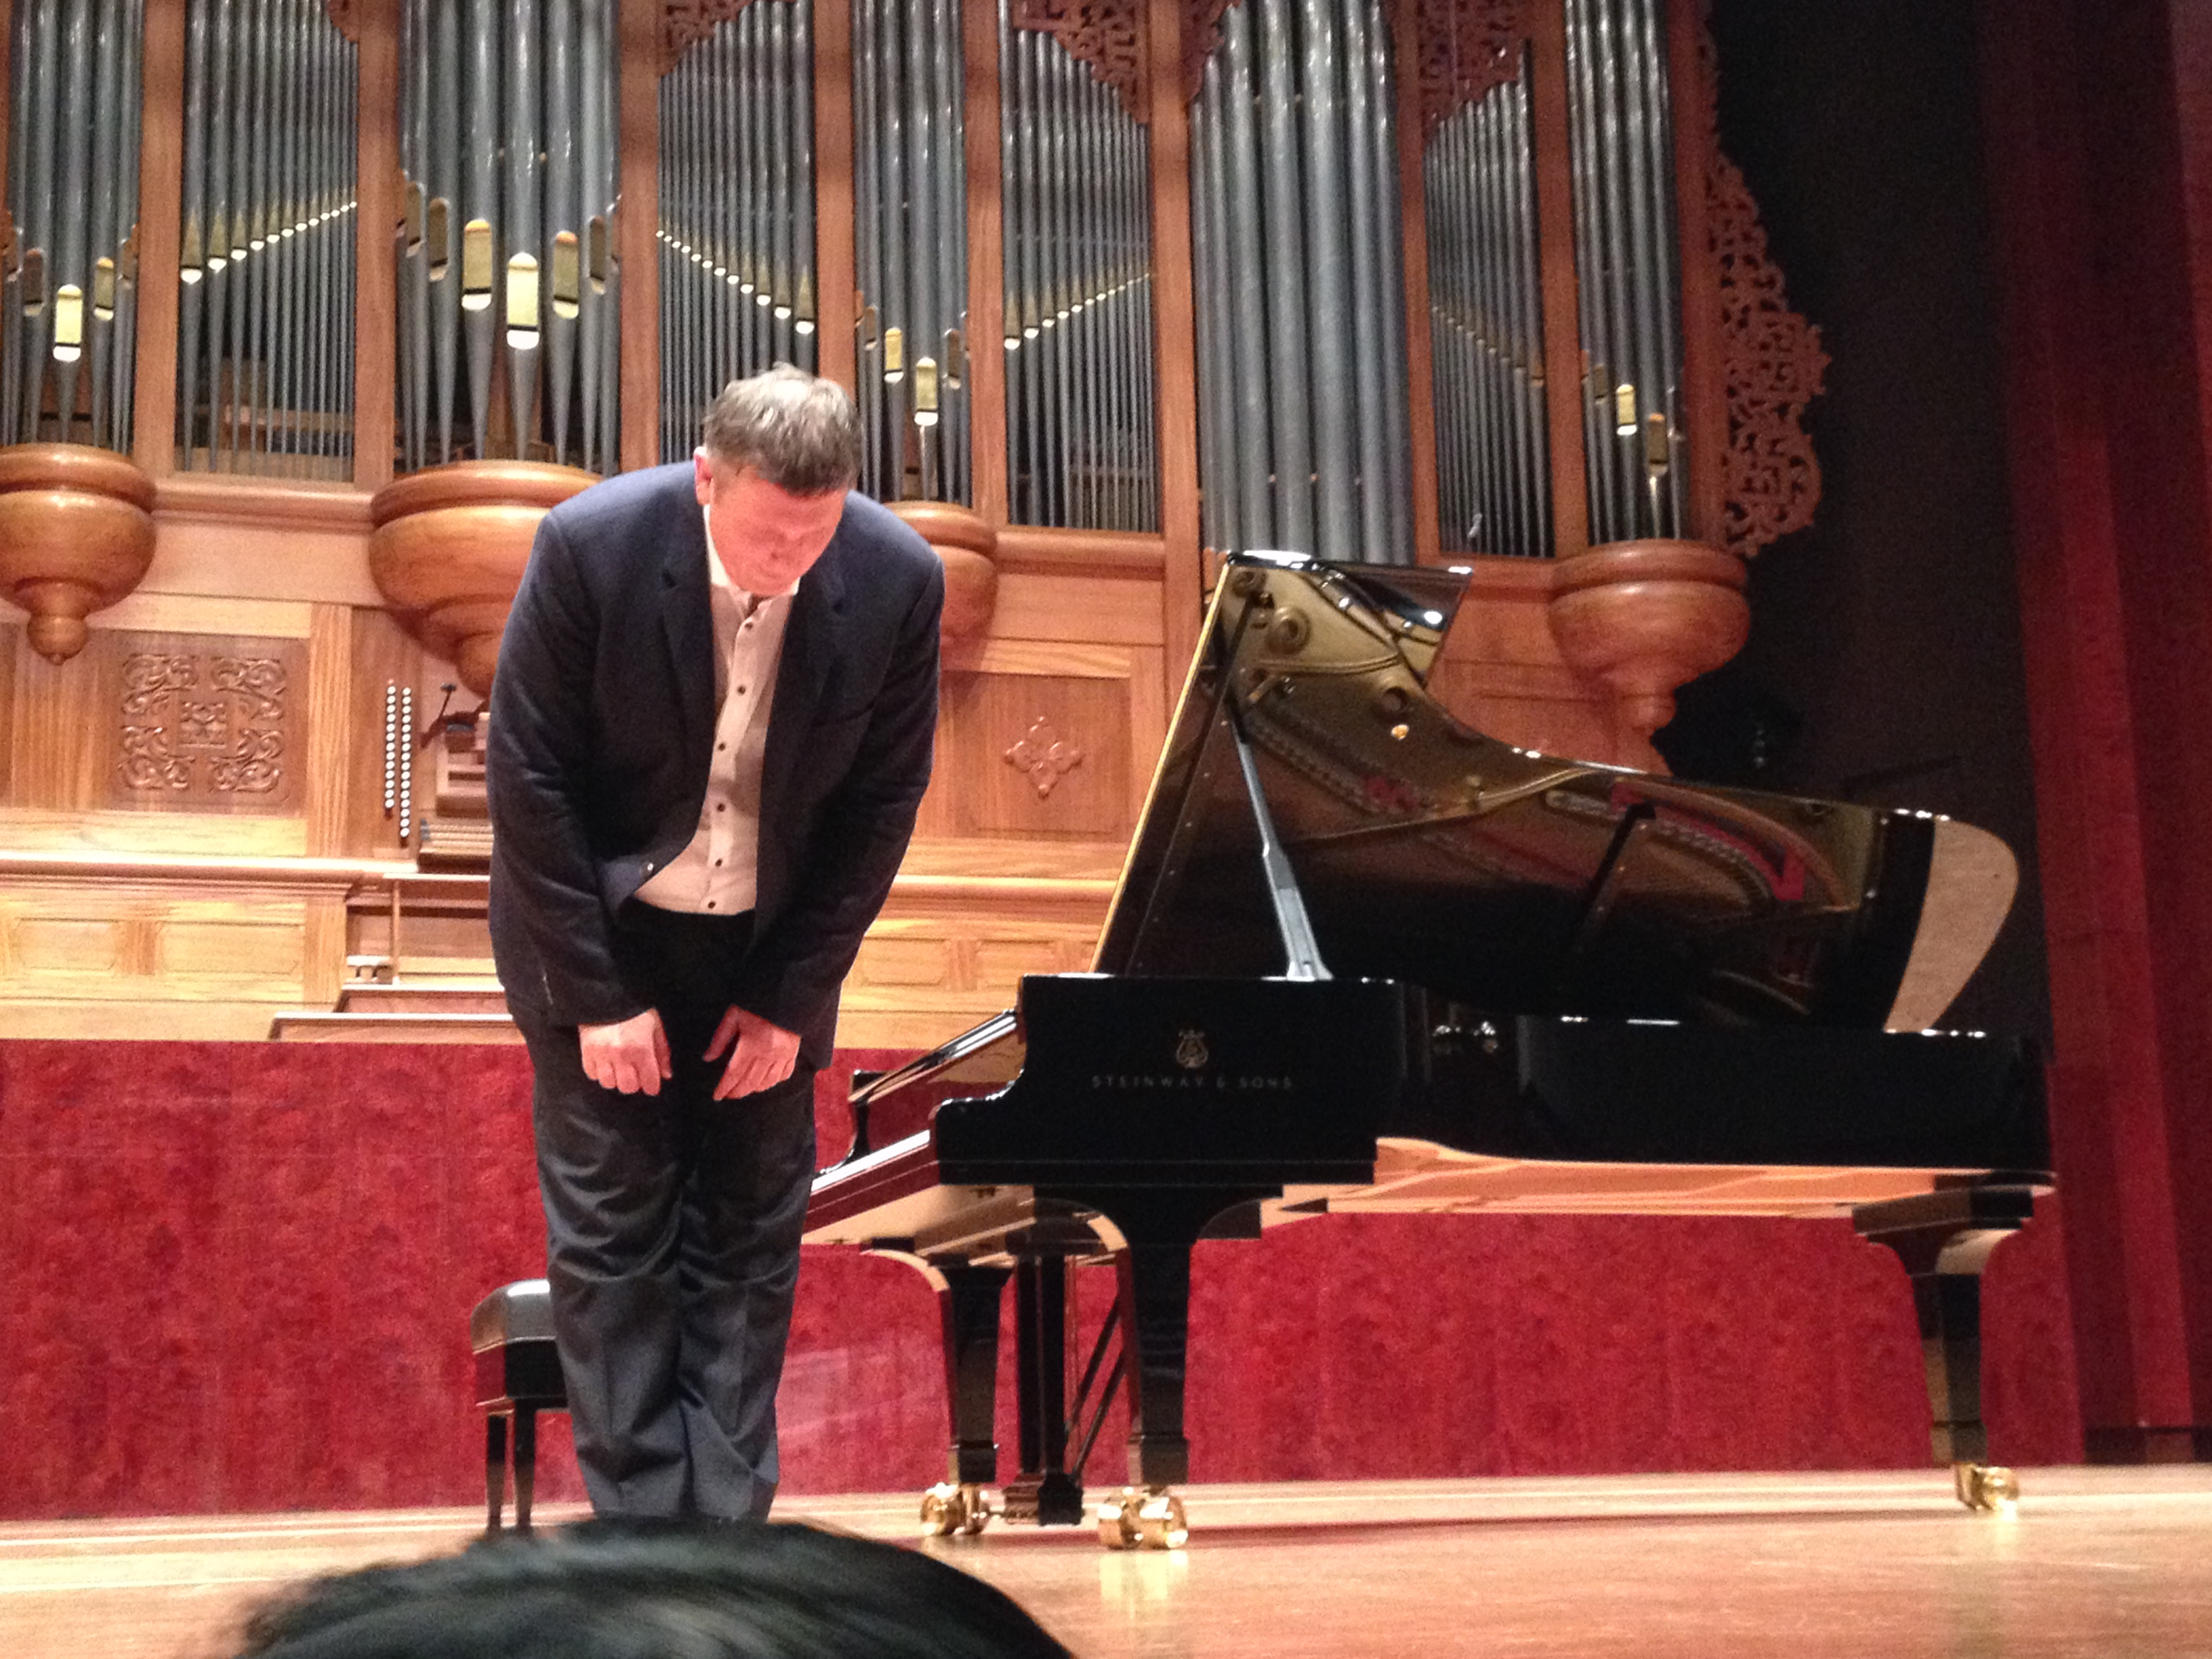 Boris Berezovsky Piano Recital Review 10 June 2014 貝瑞佐夫斯基鋼琴獨奏會